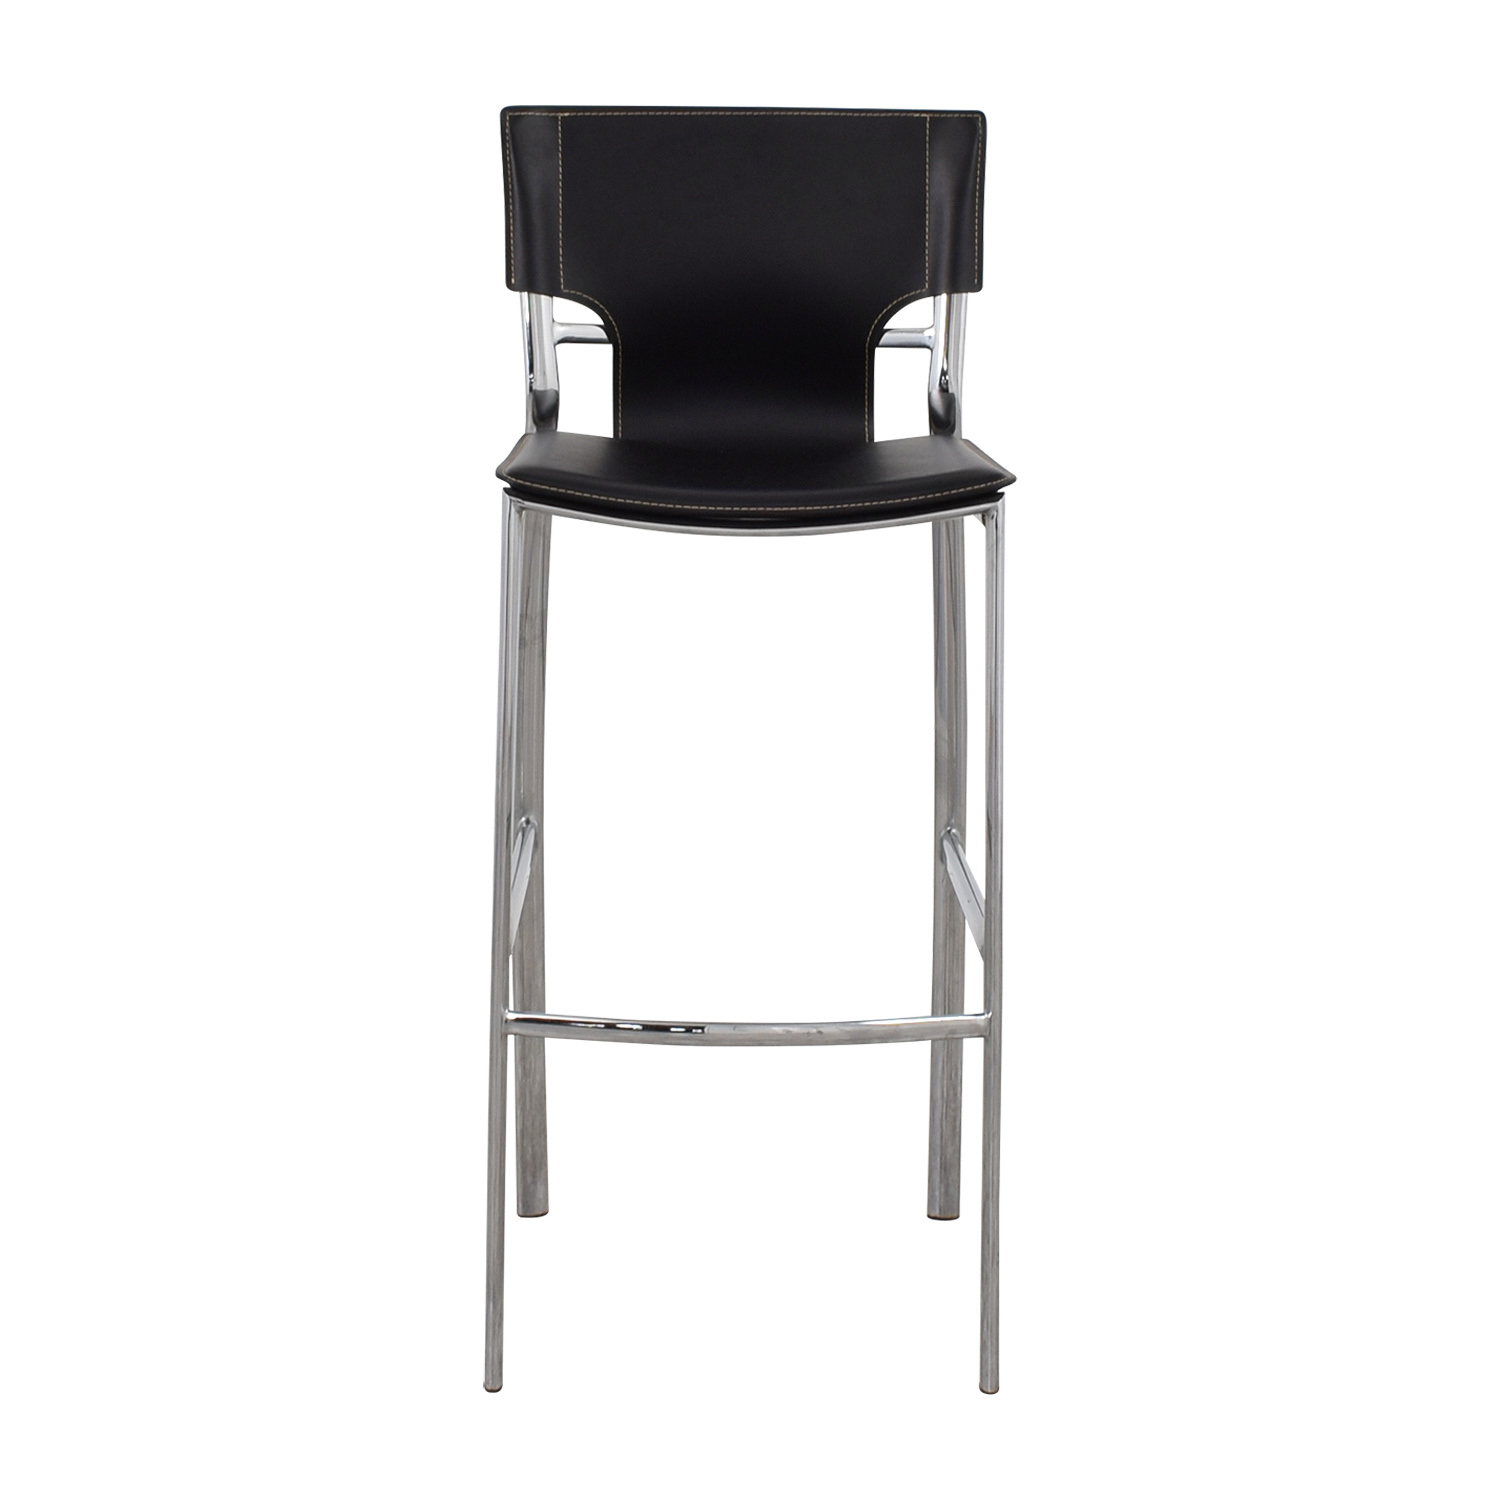 shop Modern Black Leatherette and Chrome Bar Chair online